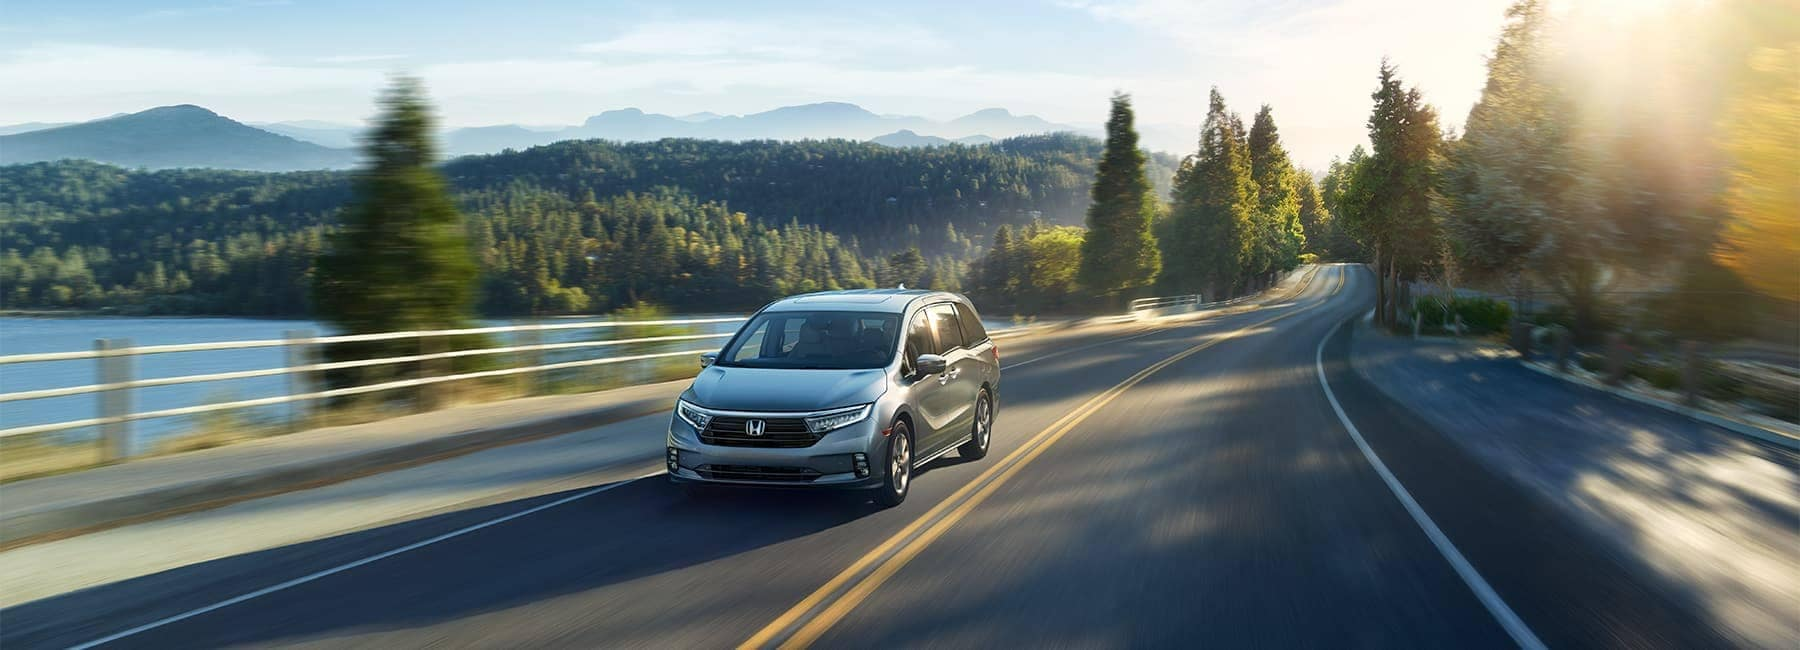 Honda Odyssey driving near lake